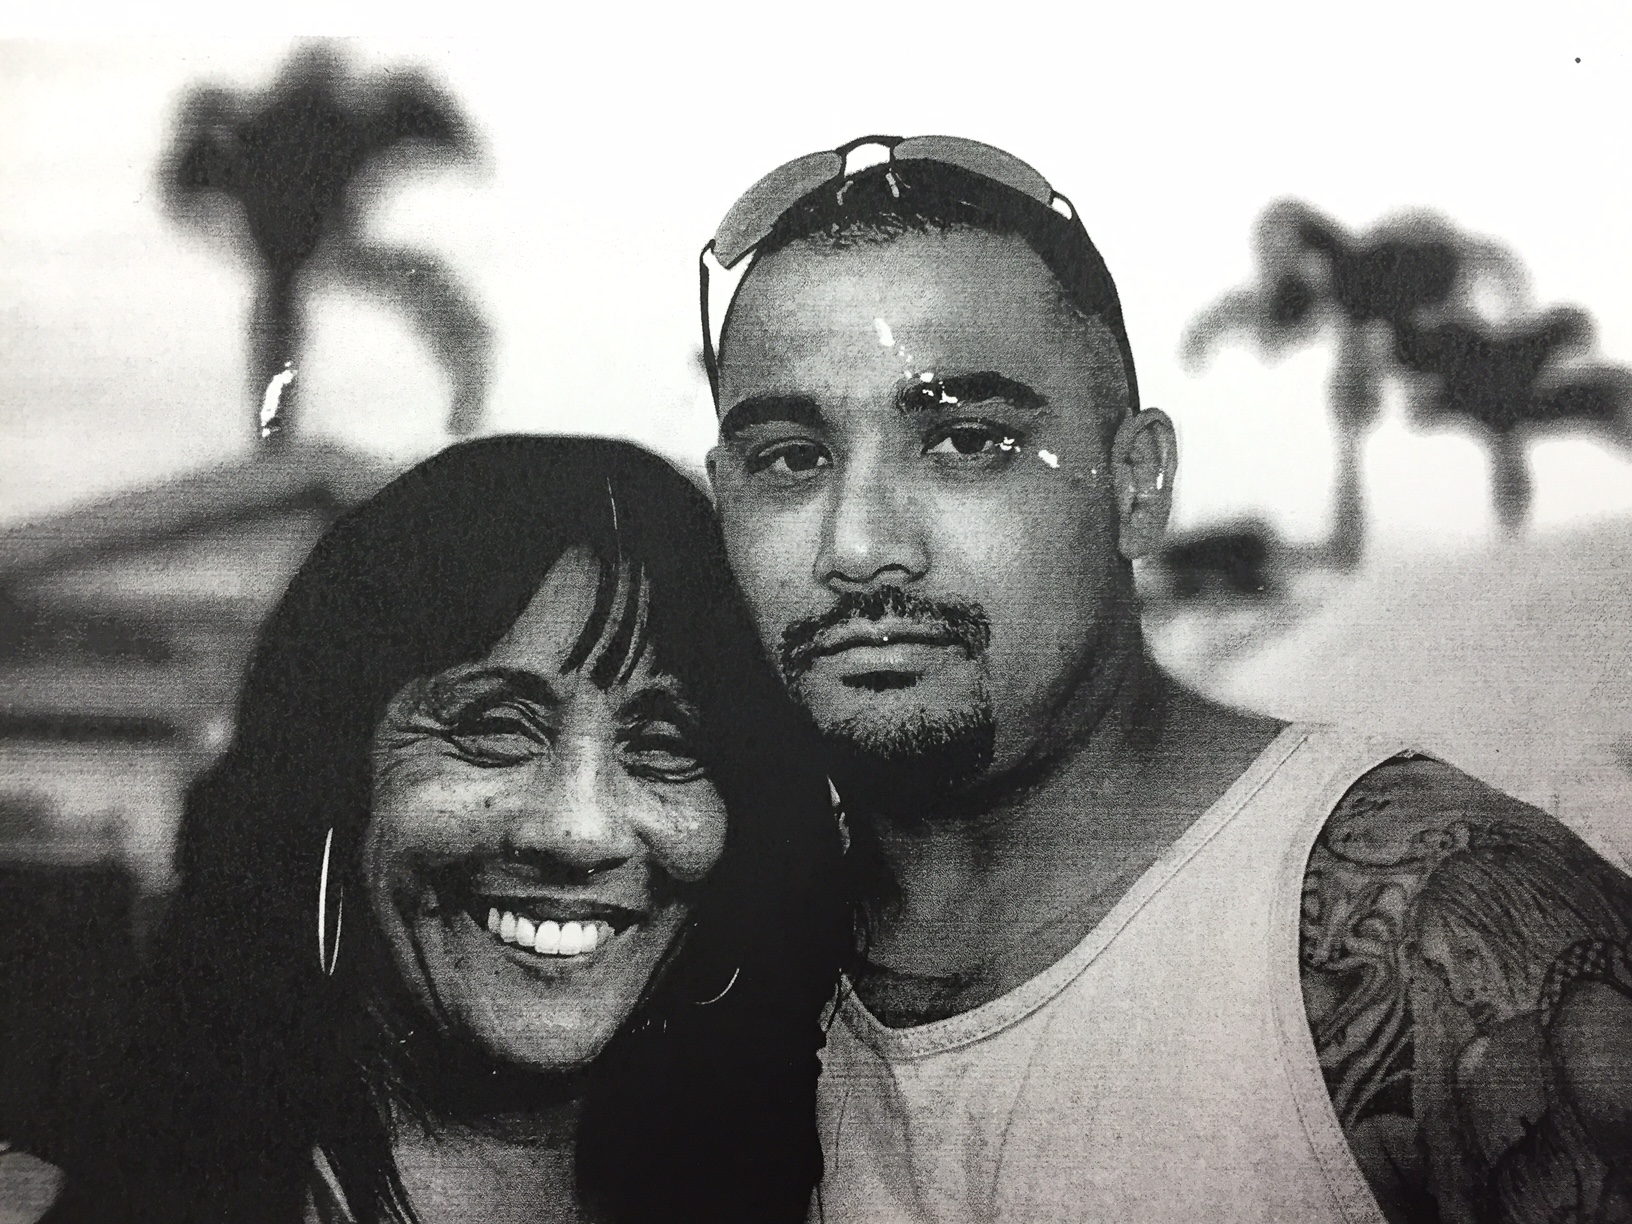 Theresa Smith smiling with her son Caesar Cruz